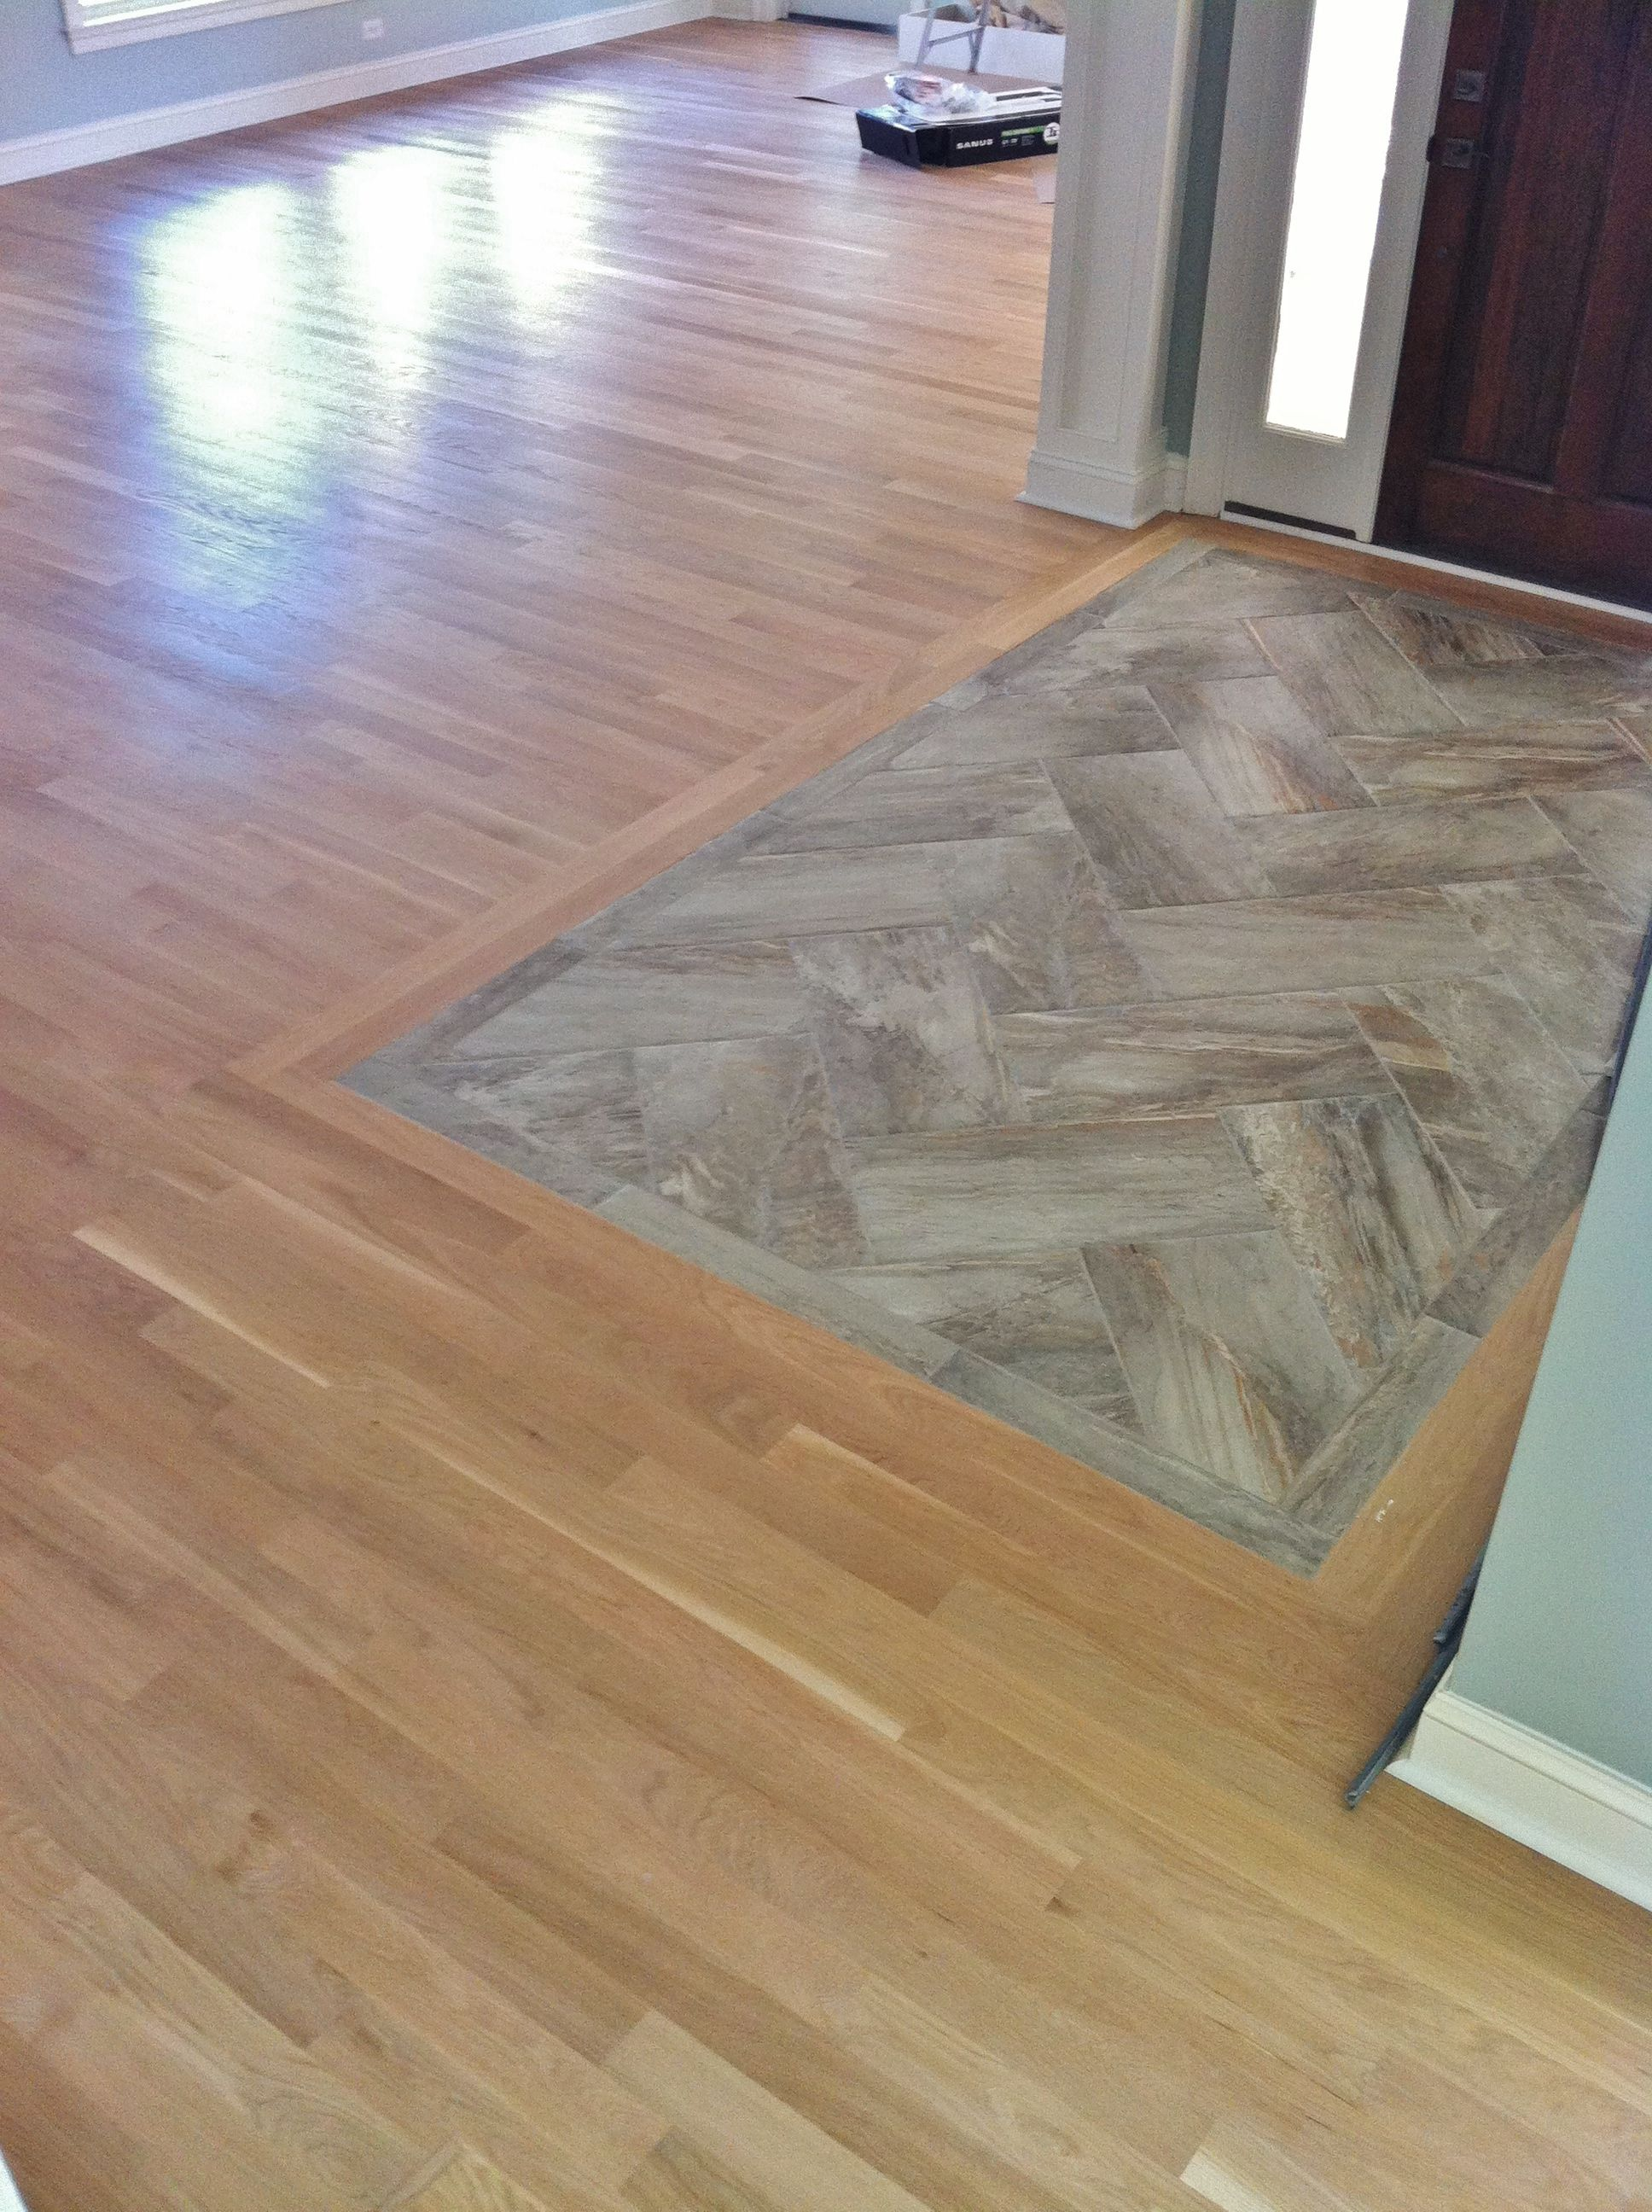 12x24 earthen essence porcelain tile insert at entryway tile is tile is set in the herringbone pattern with a border of tile and then 2 pieces of white oak picture frame the tile dailygadgetfo Gallery